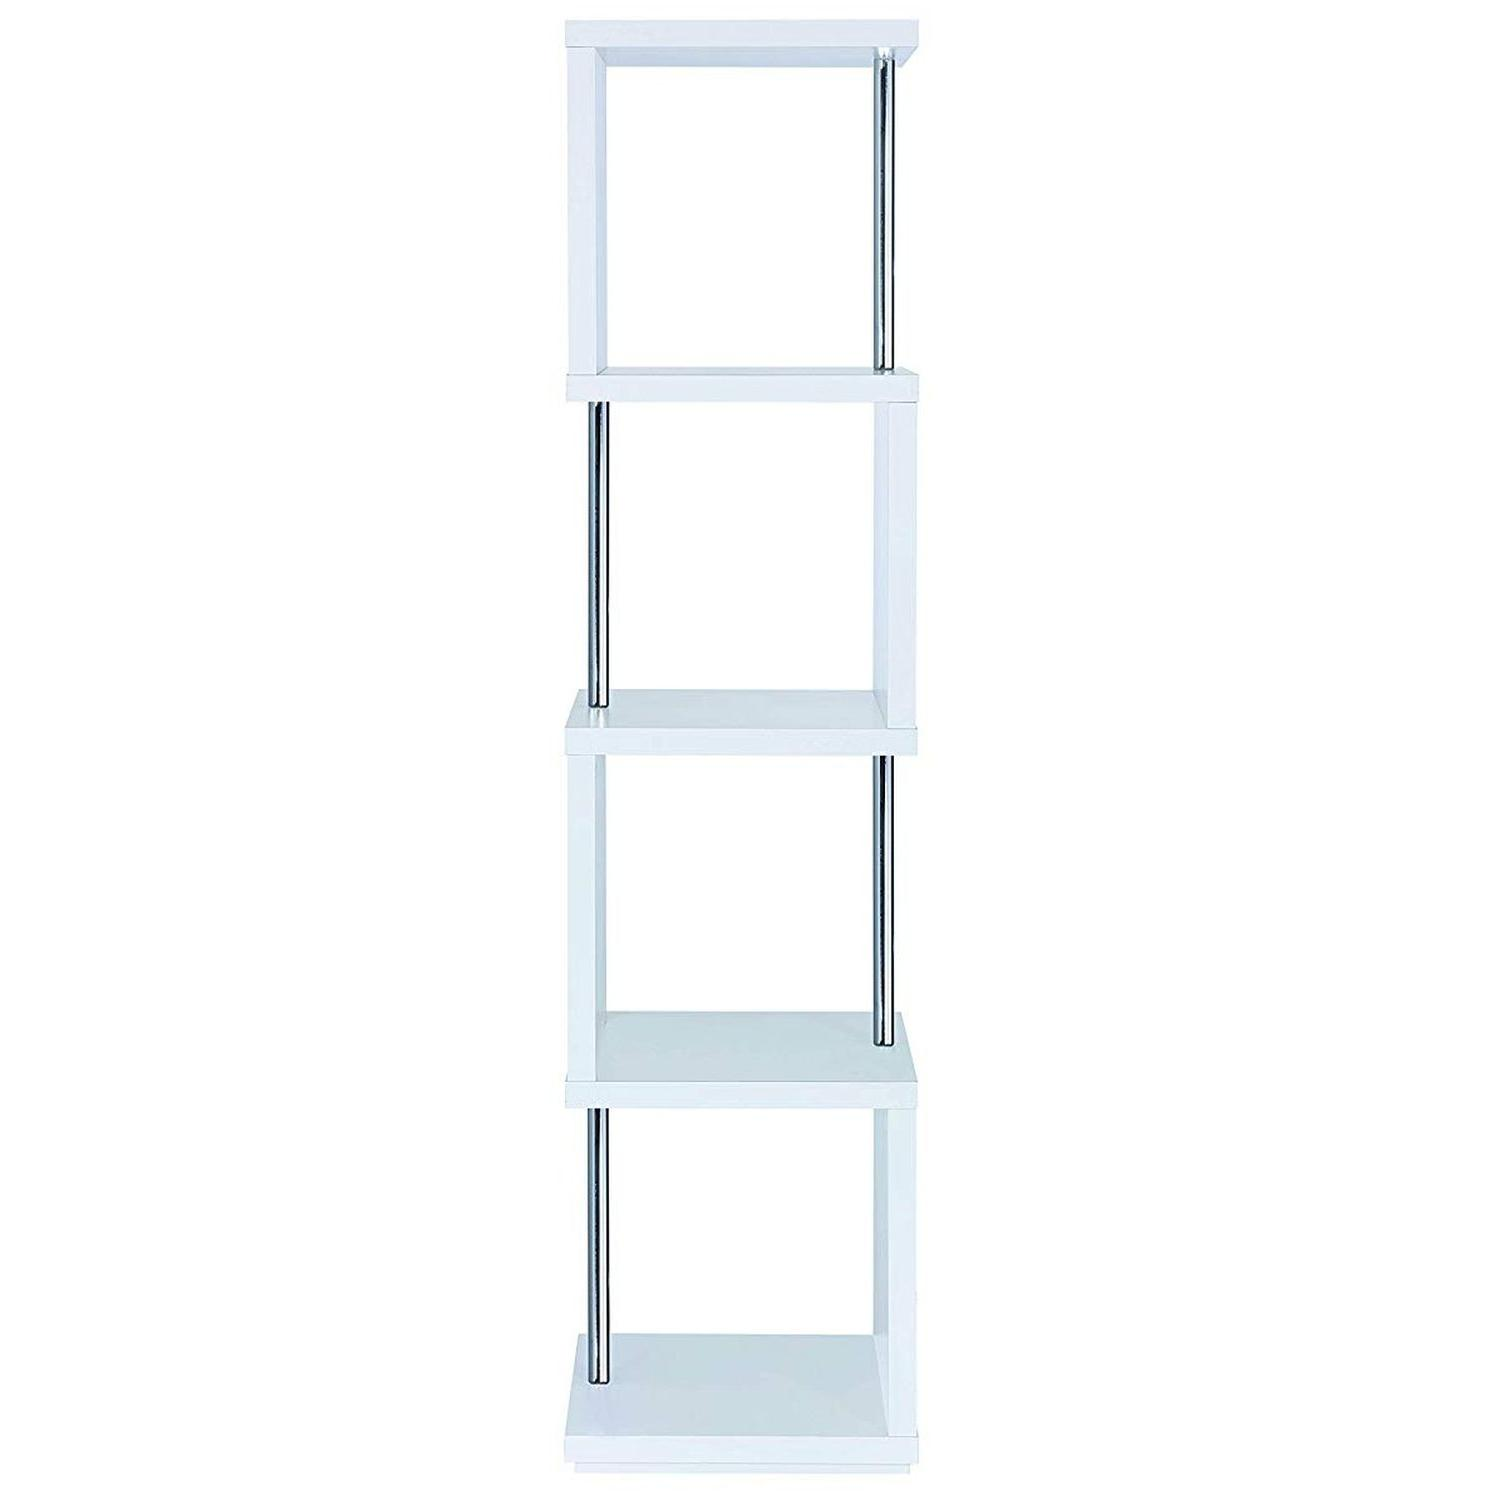 4-Tier White Bookcase w/ Chrome Metal Bar Accents - image-2